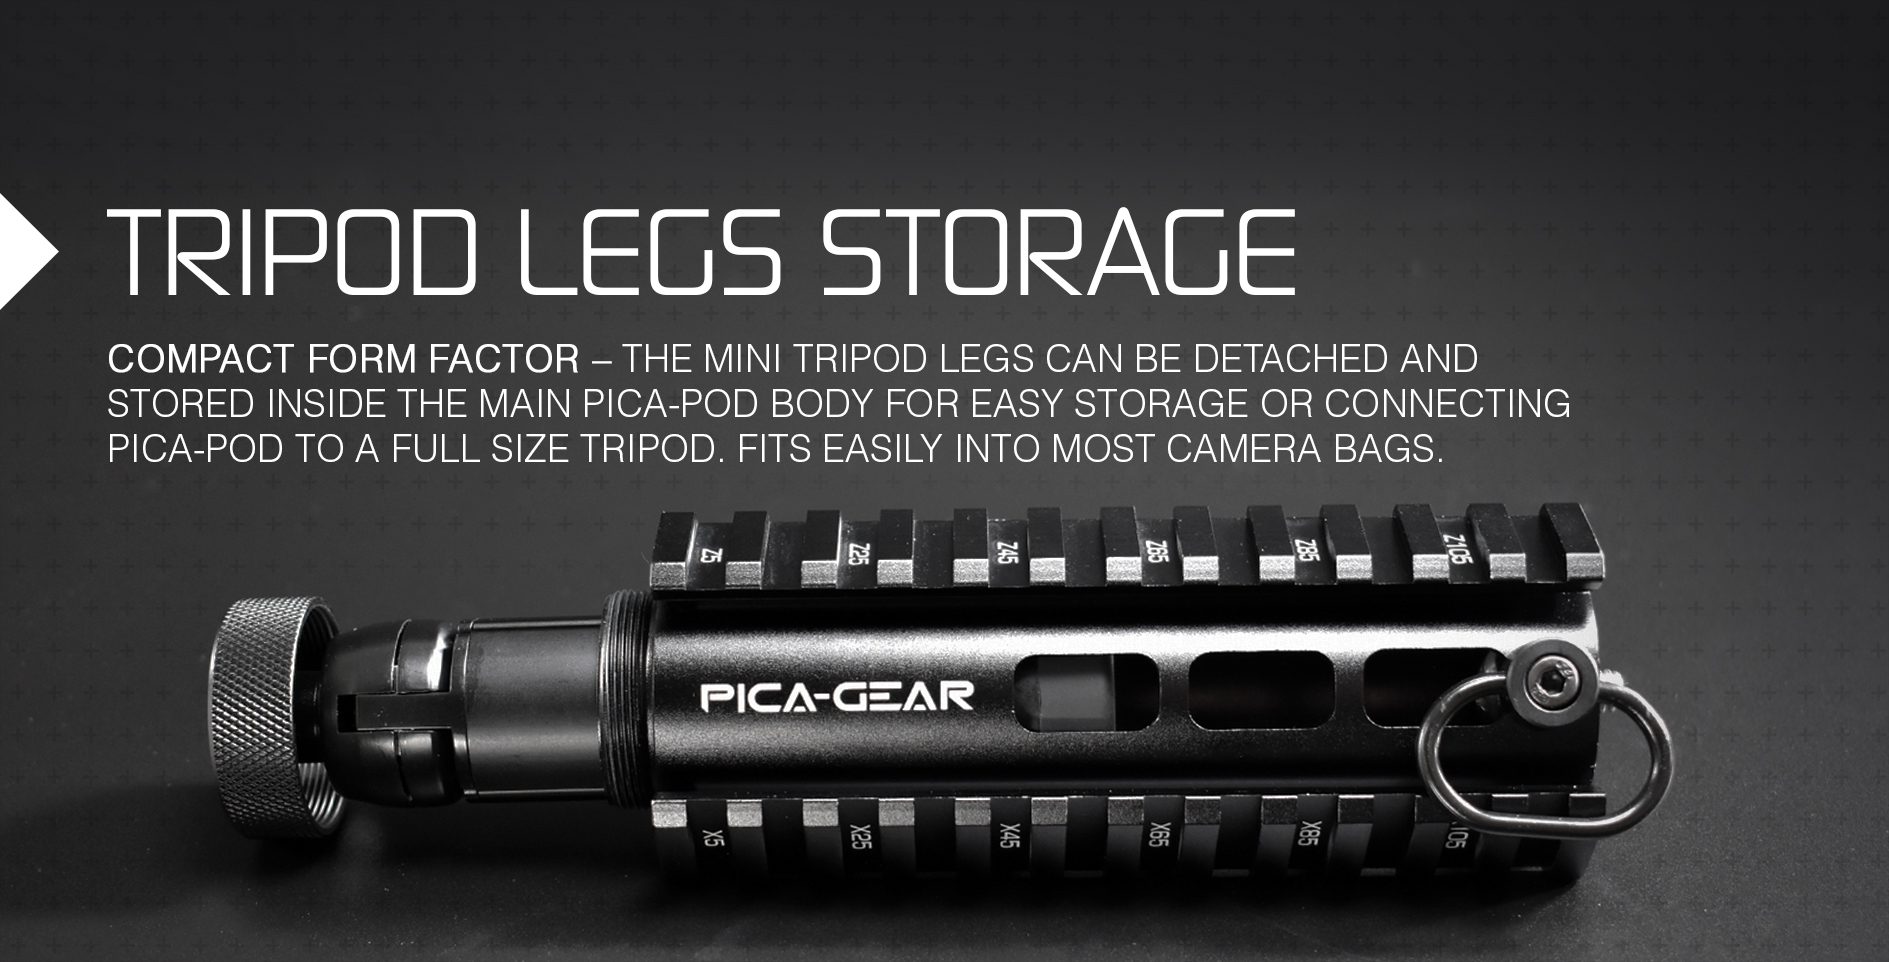 PICA-GEAR_Pica-Pod mini tripod adaptive mounting solution 07.jpg